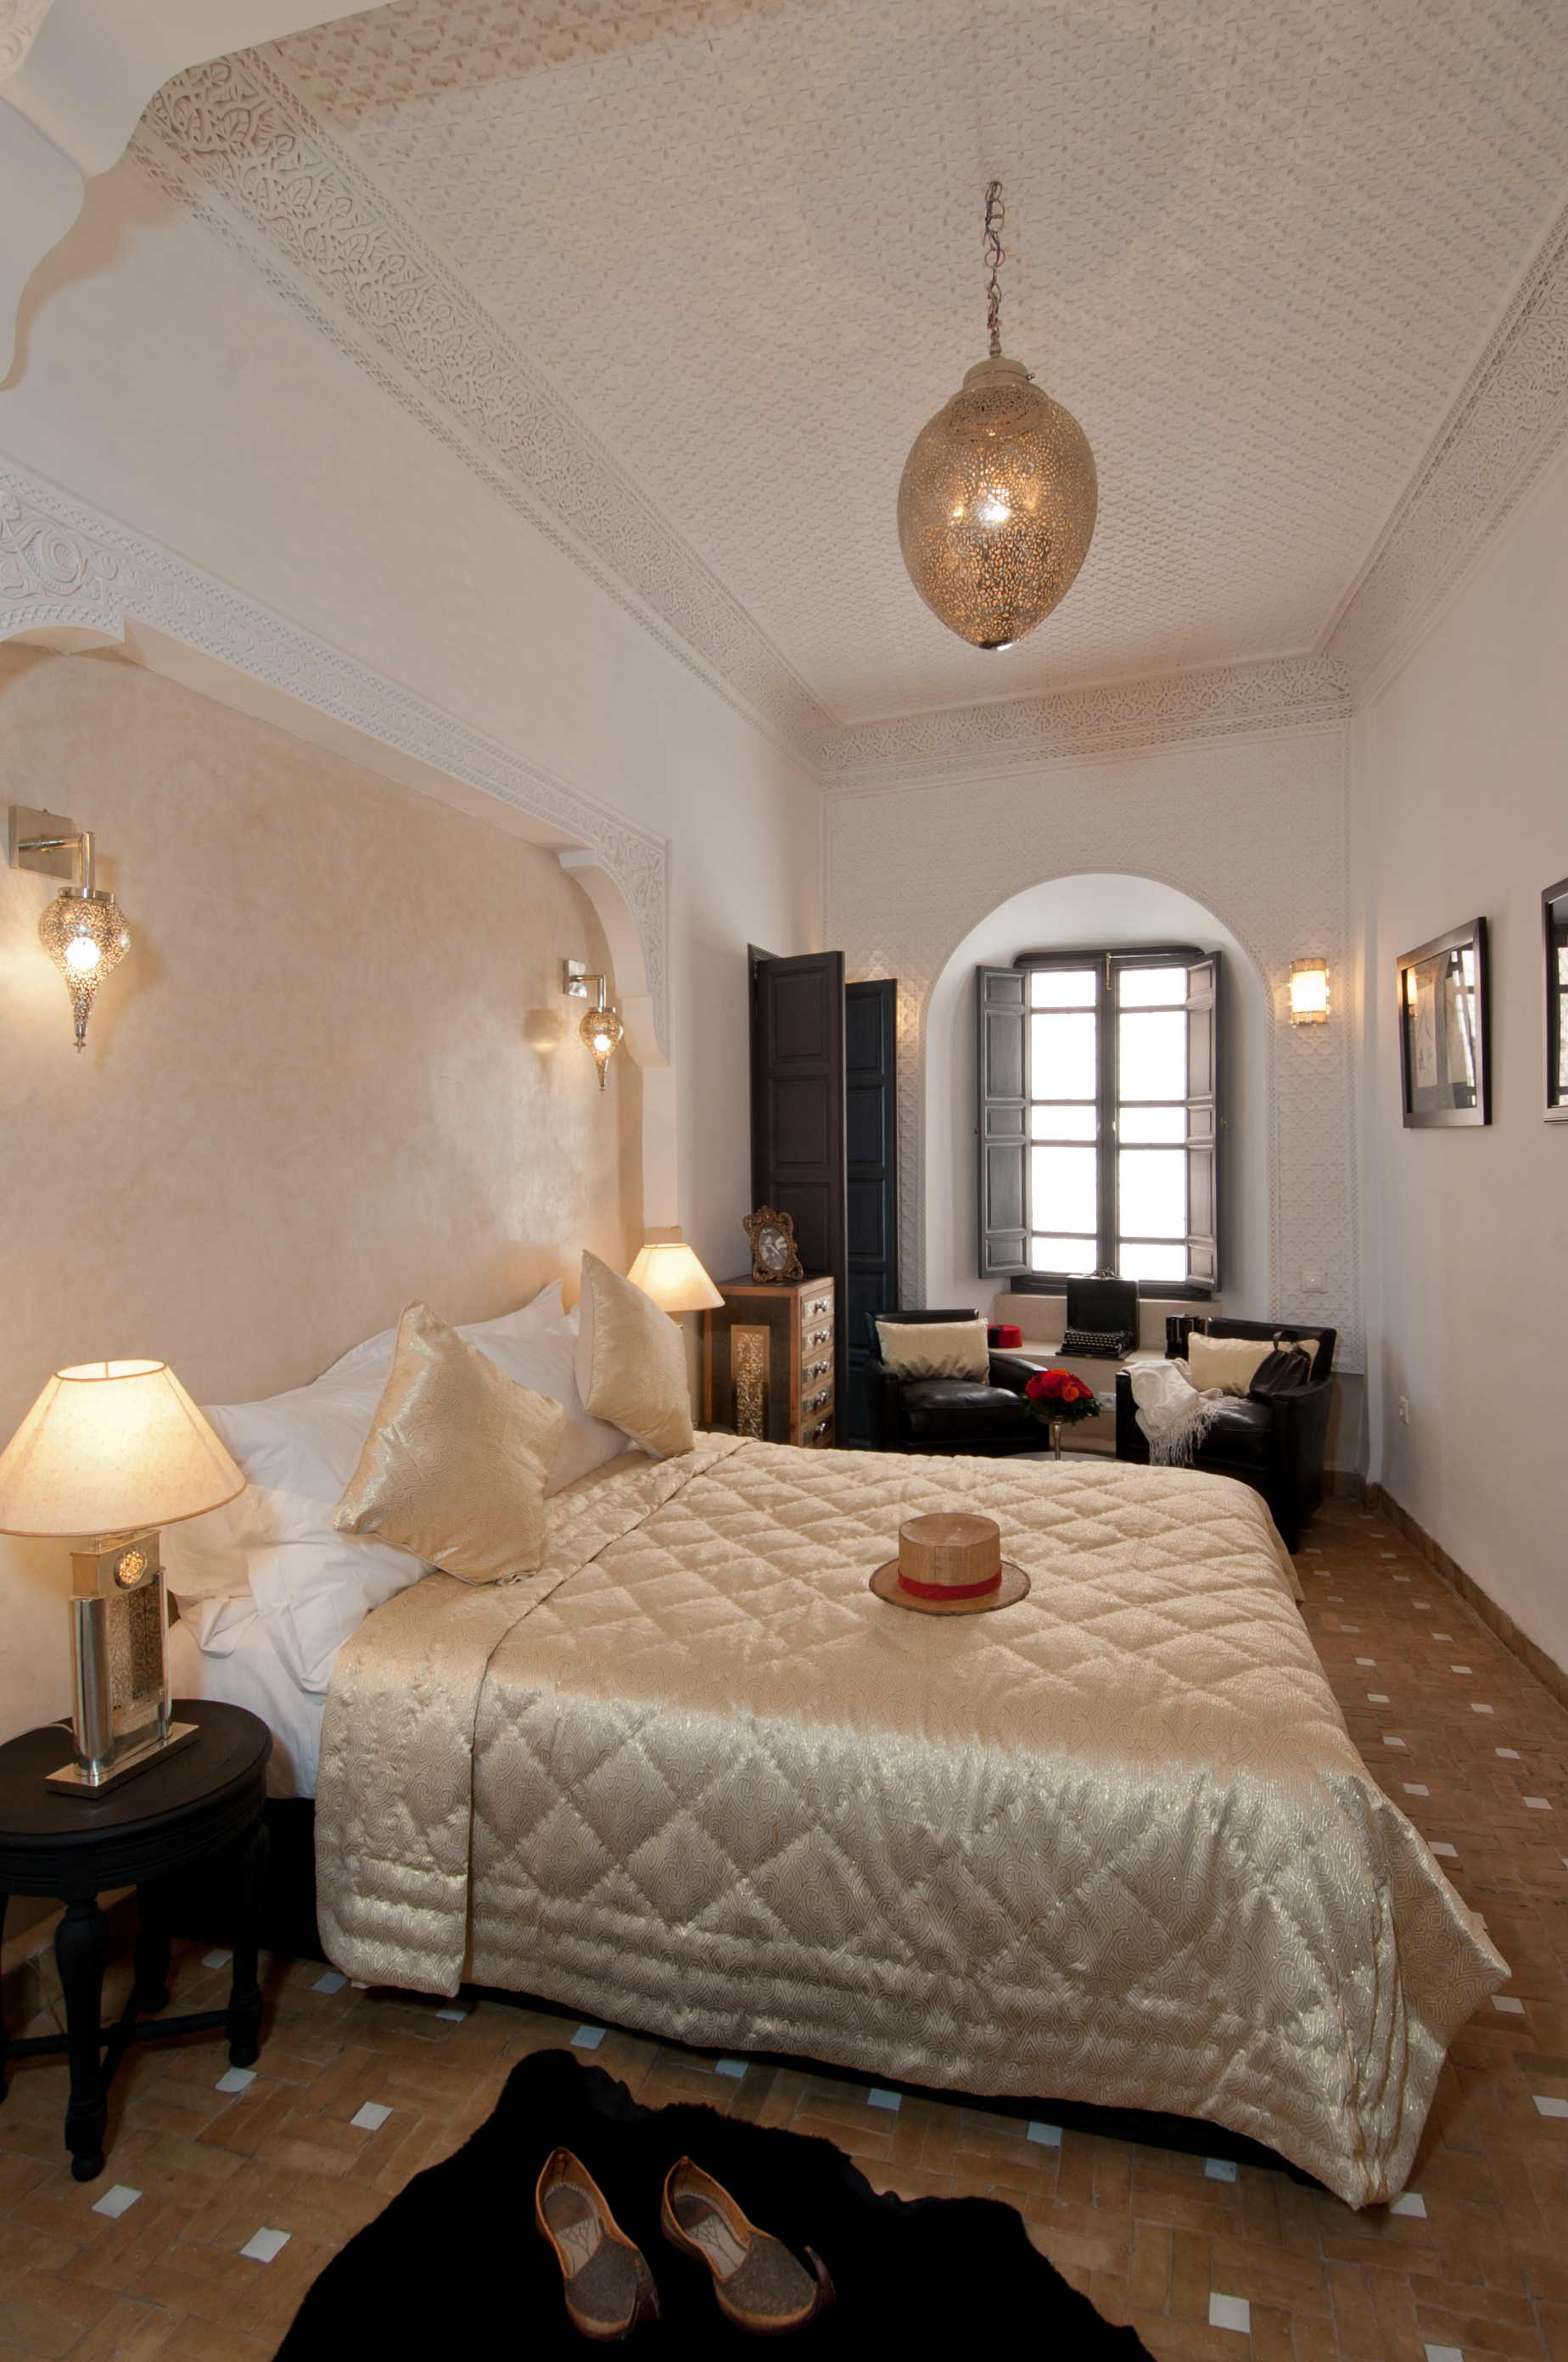 Riad Star, A New Boutique Riad In Marrakech, Your Morocco